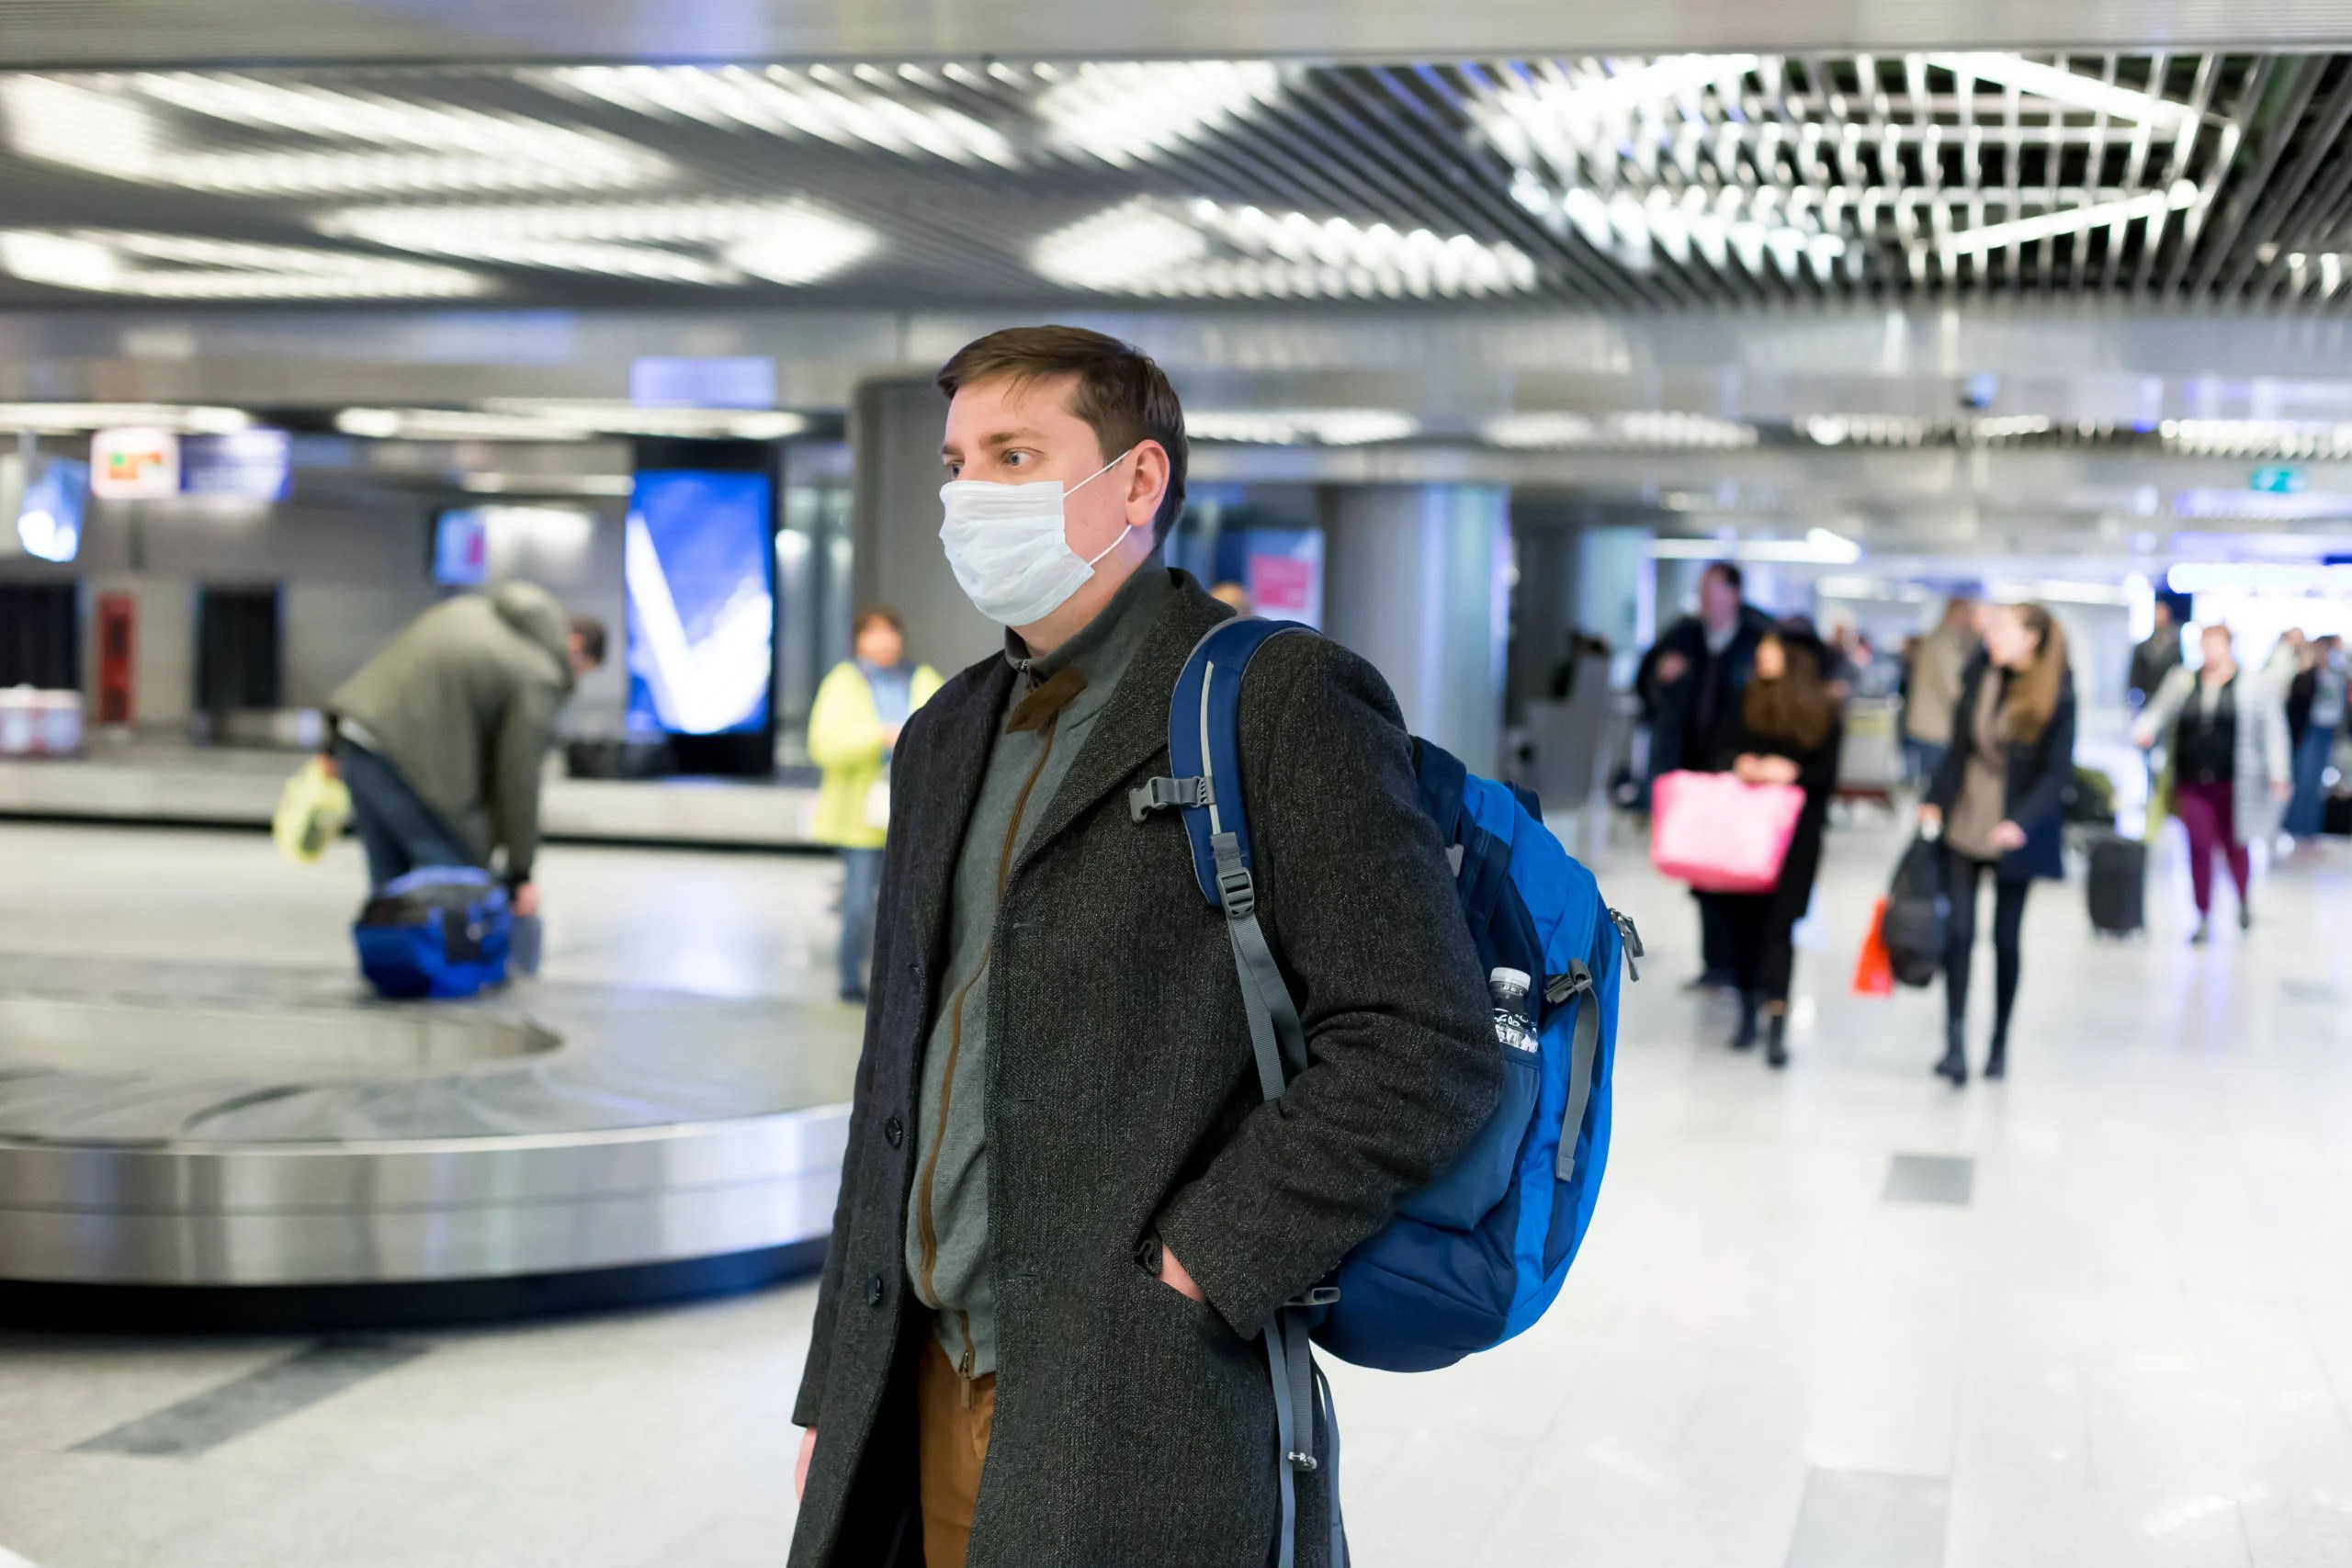 Coronavirus: What to expect when flying into the United States